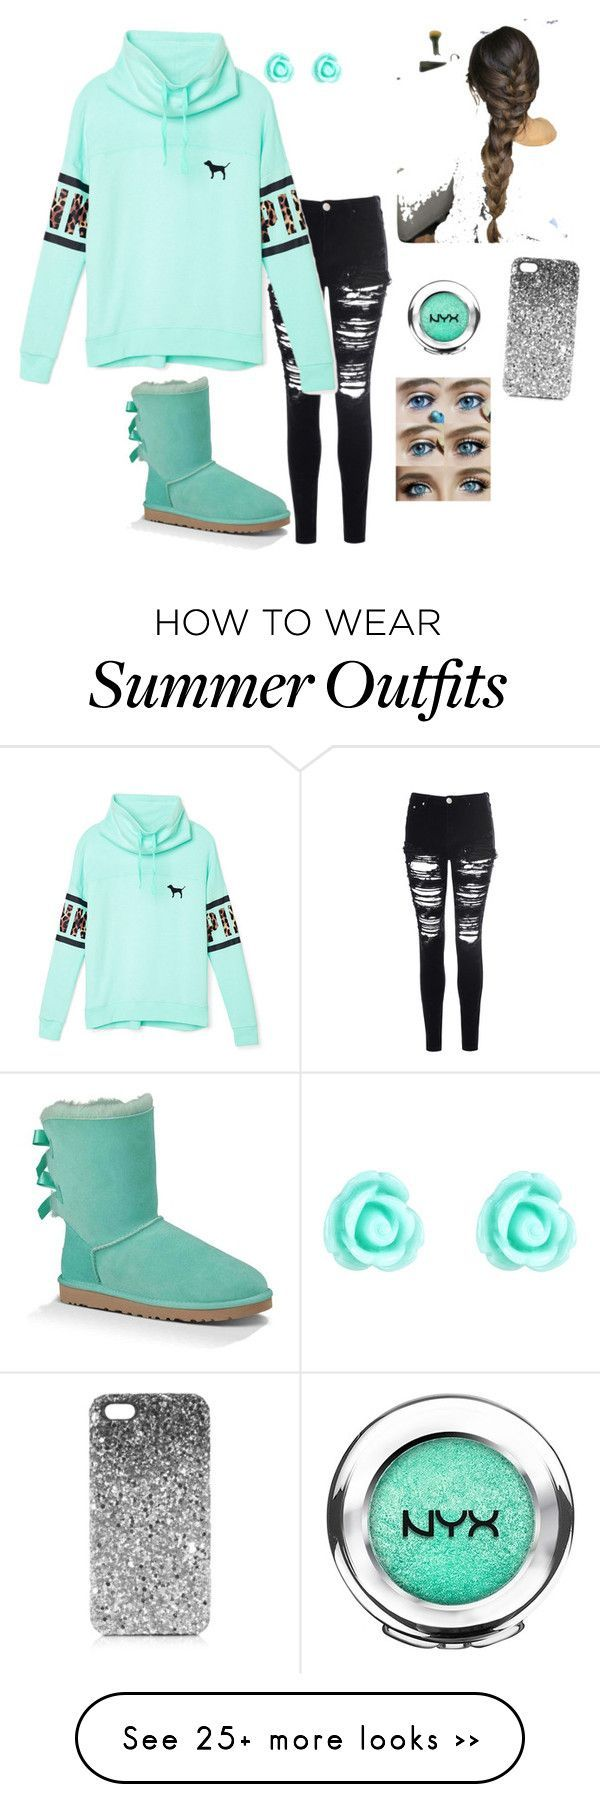 Outfit for school by okiegirl1997 on Polyvore featuring Glamorous, Victorias Secret PINK, UGG Australia, NYX, Monsoon and Topshop